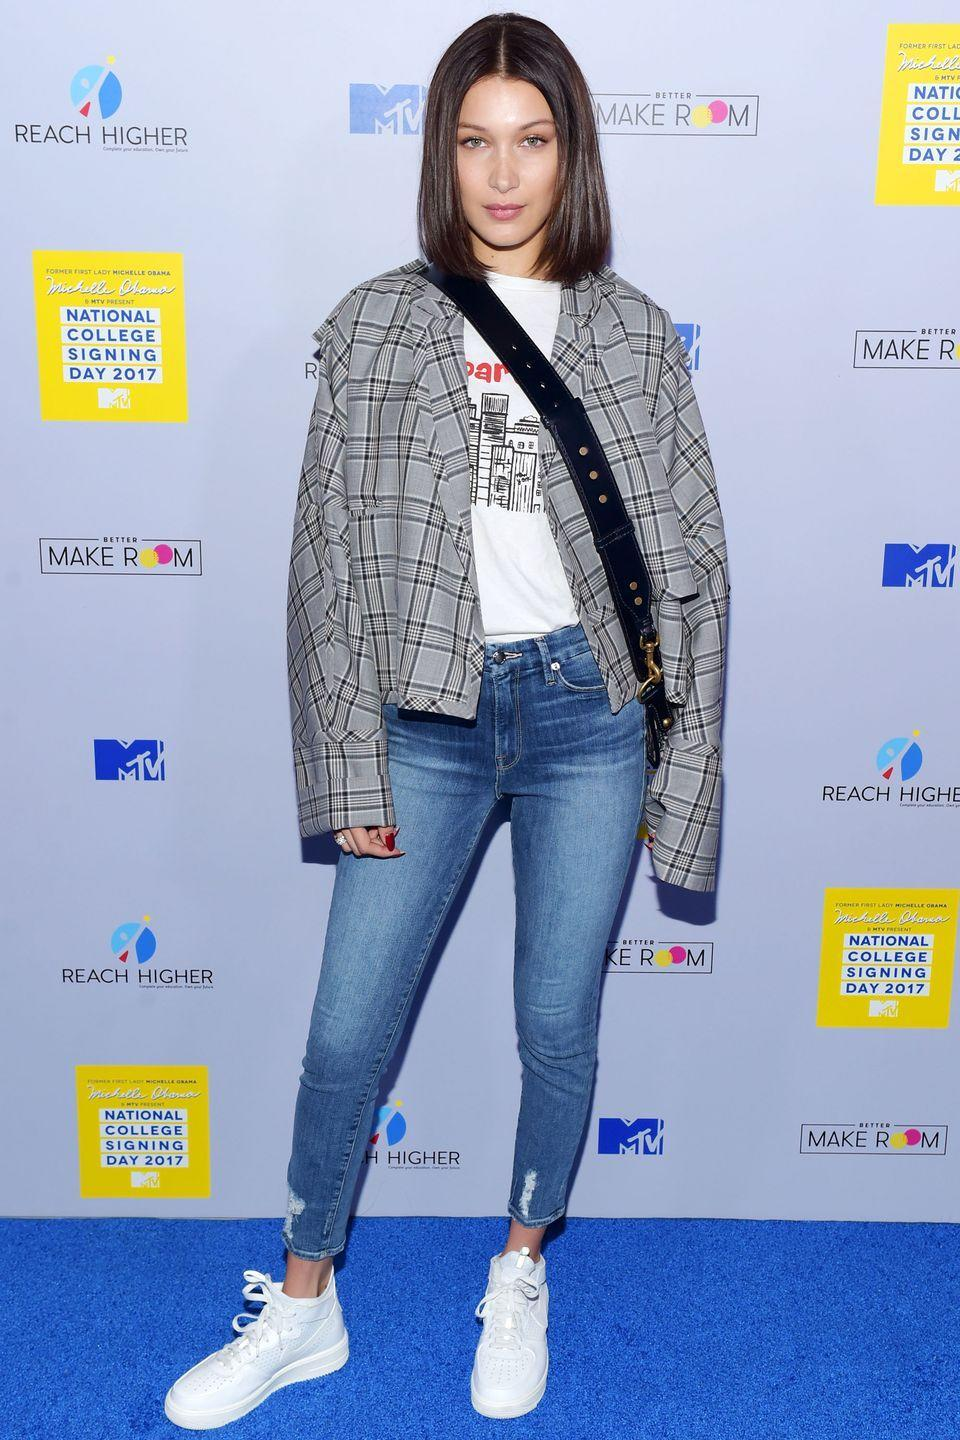 <p>In a grey plaid jacket, white graphic tee, crossbody bag, cropped jeans and white sneakers at a National College Signing Day event in NYC.</p>